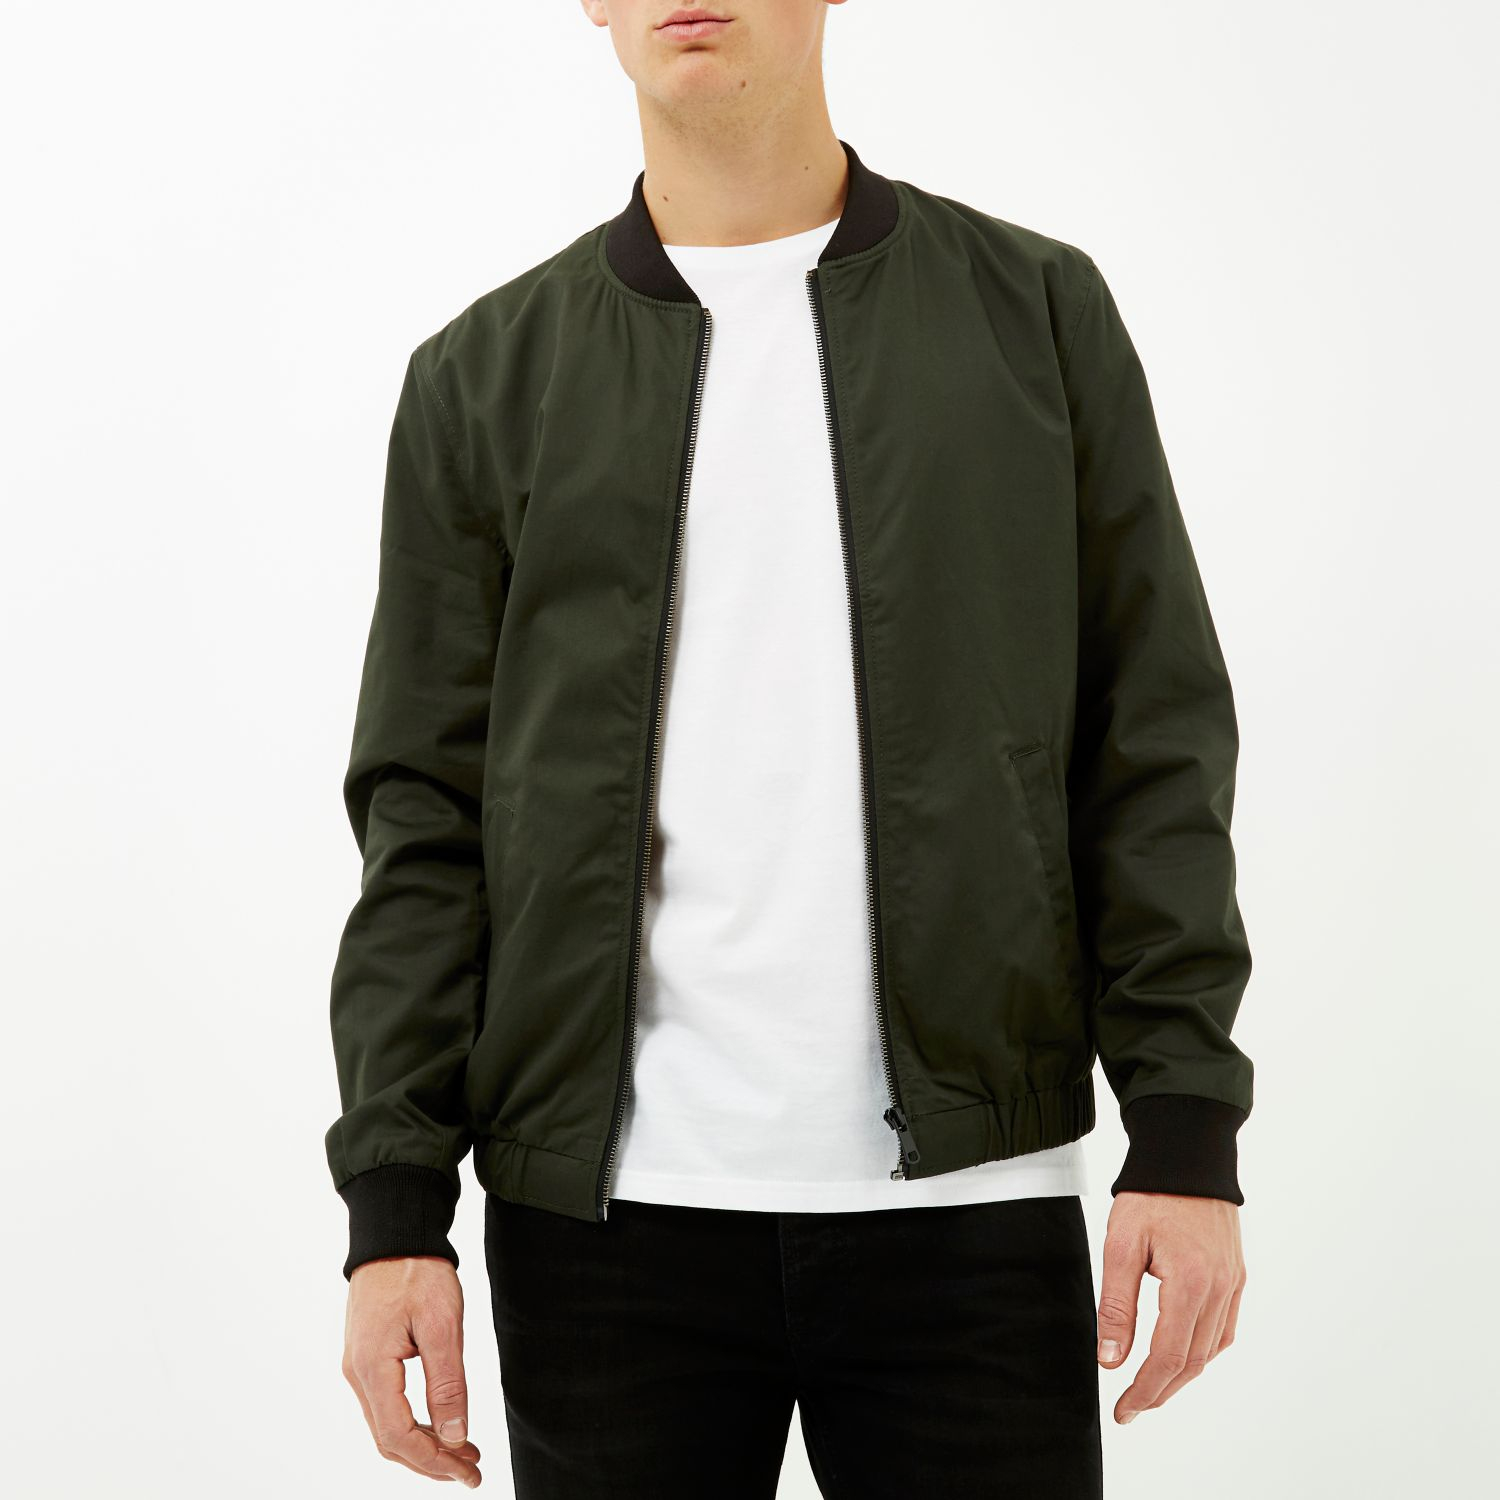 Dark green casual bomber jacket – Modern fashion jacket photo blog